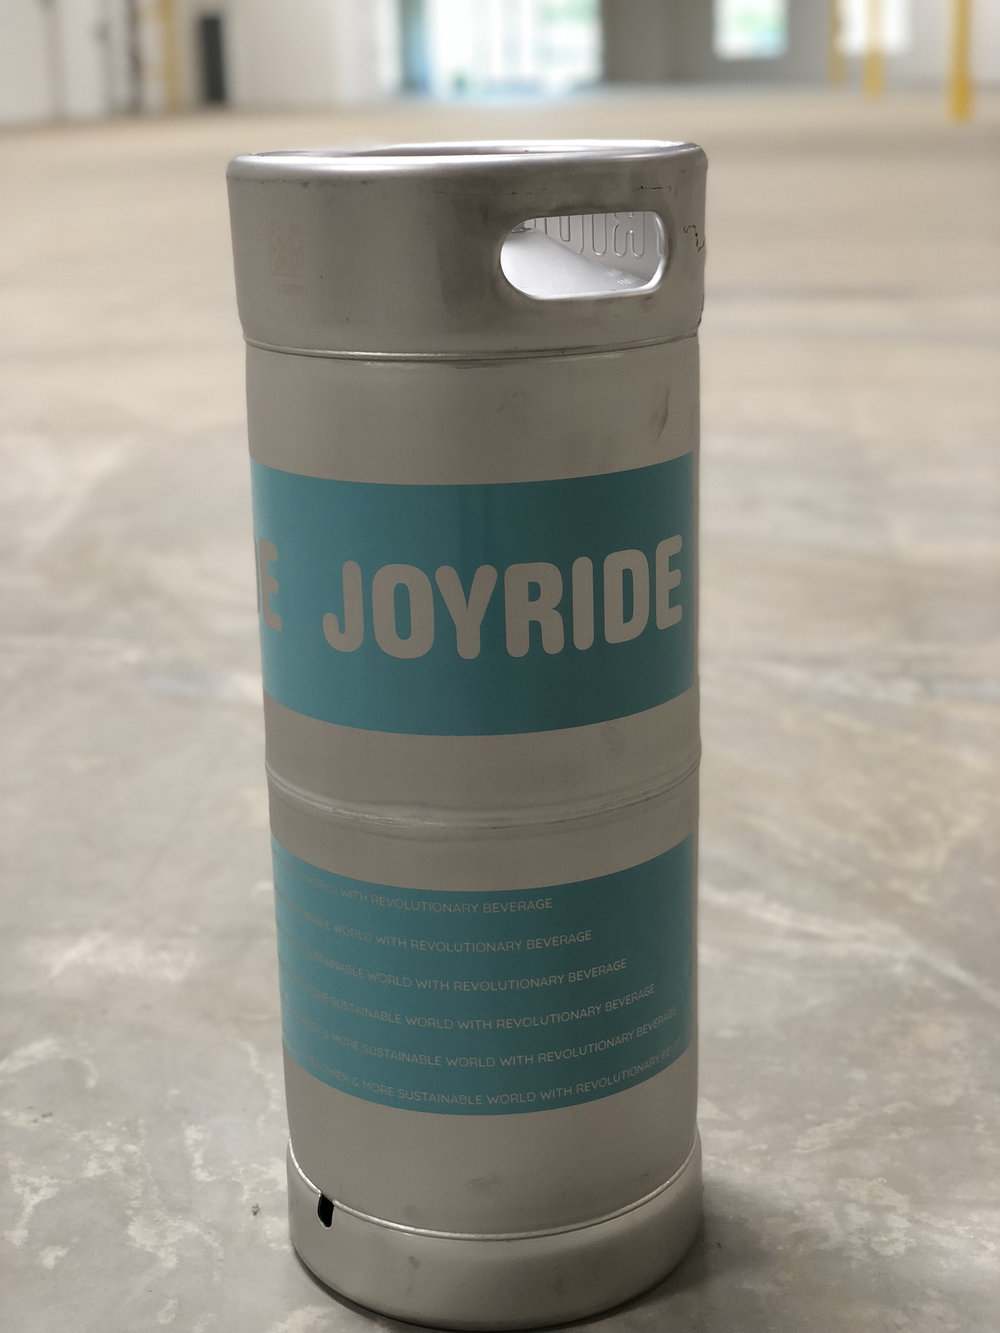 One of Joyrides re-usable kegs